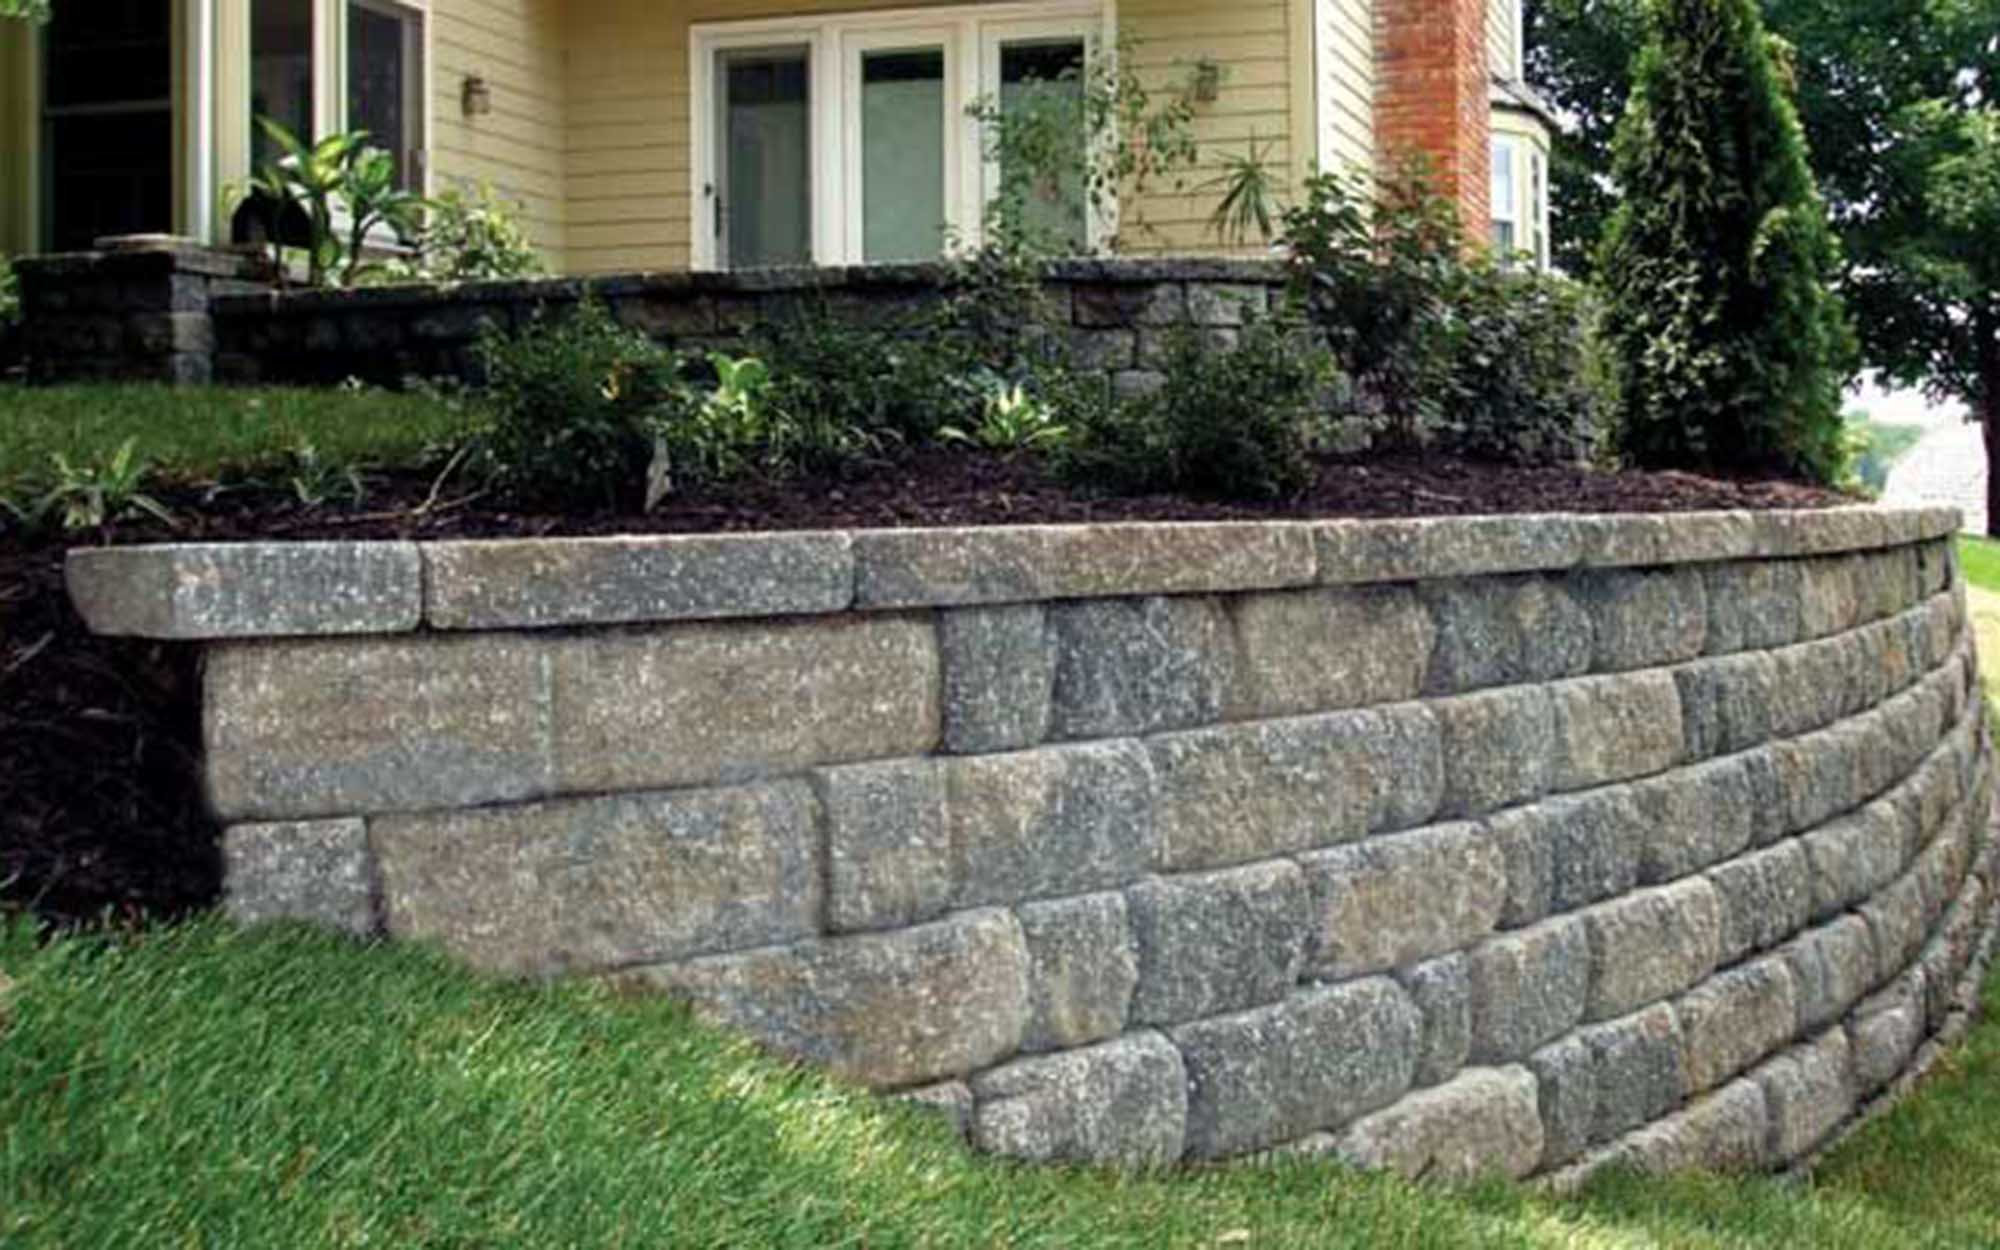 Keystone Hardscapes Retaining Walls - Pavestone retaining walls are functional and beautiful. Choose from many different colors.